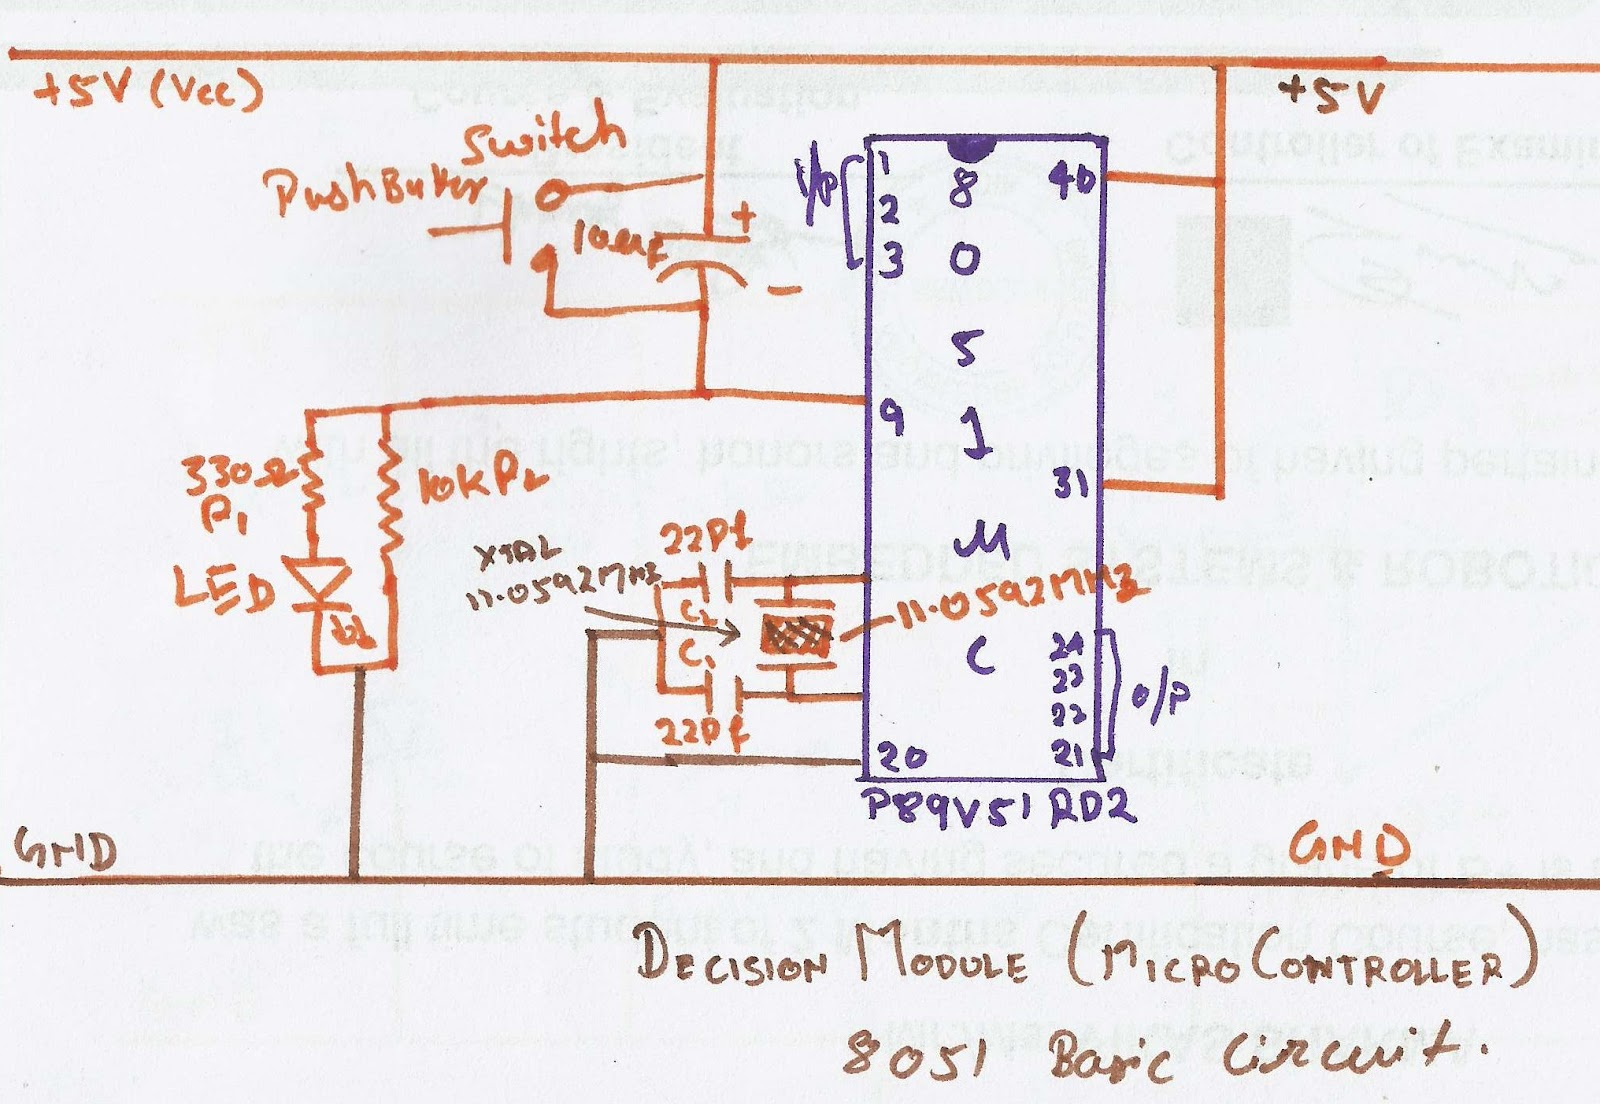 August 2012 2embeddedrobotics Ir Receiver Circuit Diagram 8051 Micro Controller